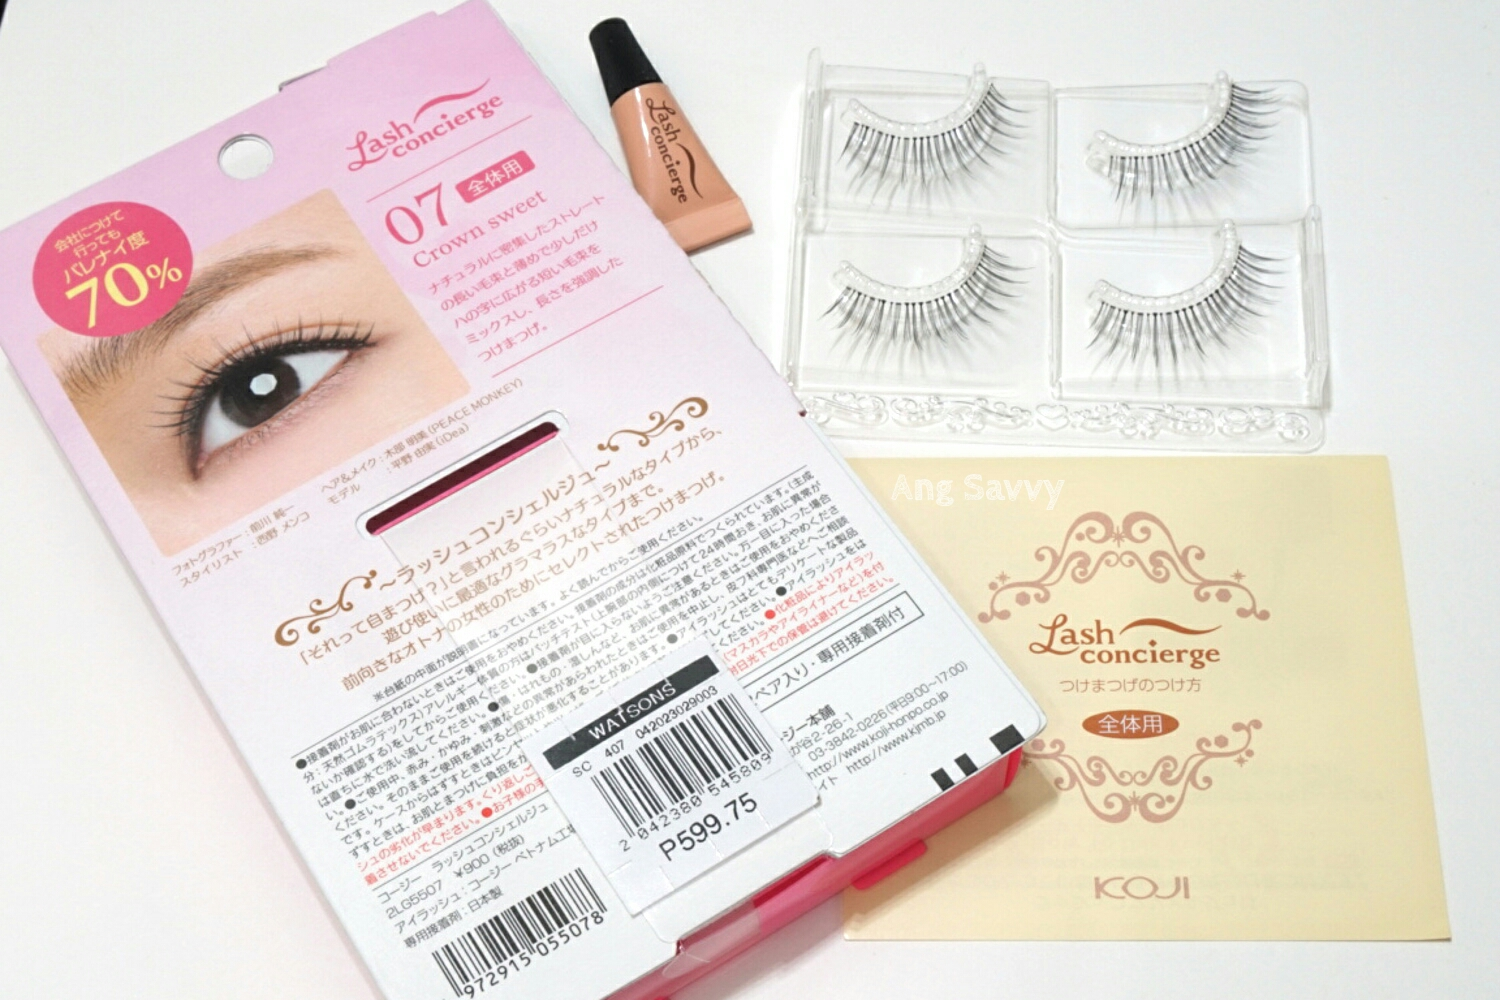 Koji Lash Concierge False Eyelashes 07 Crown Sweet